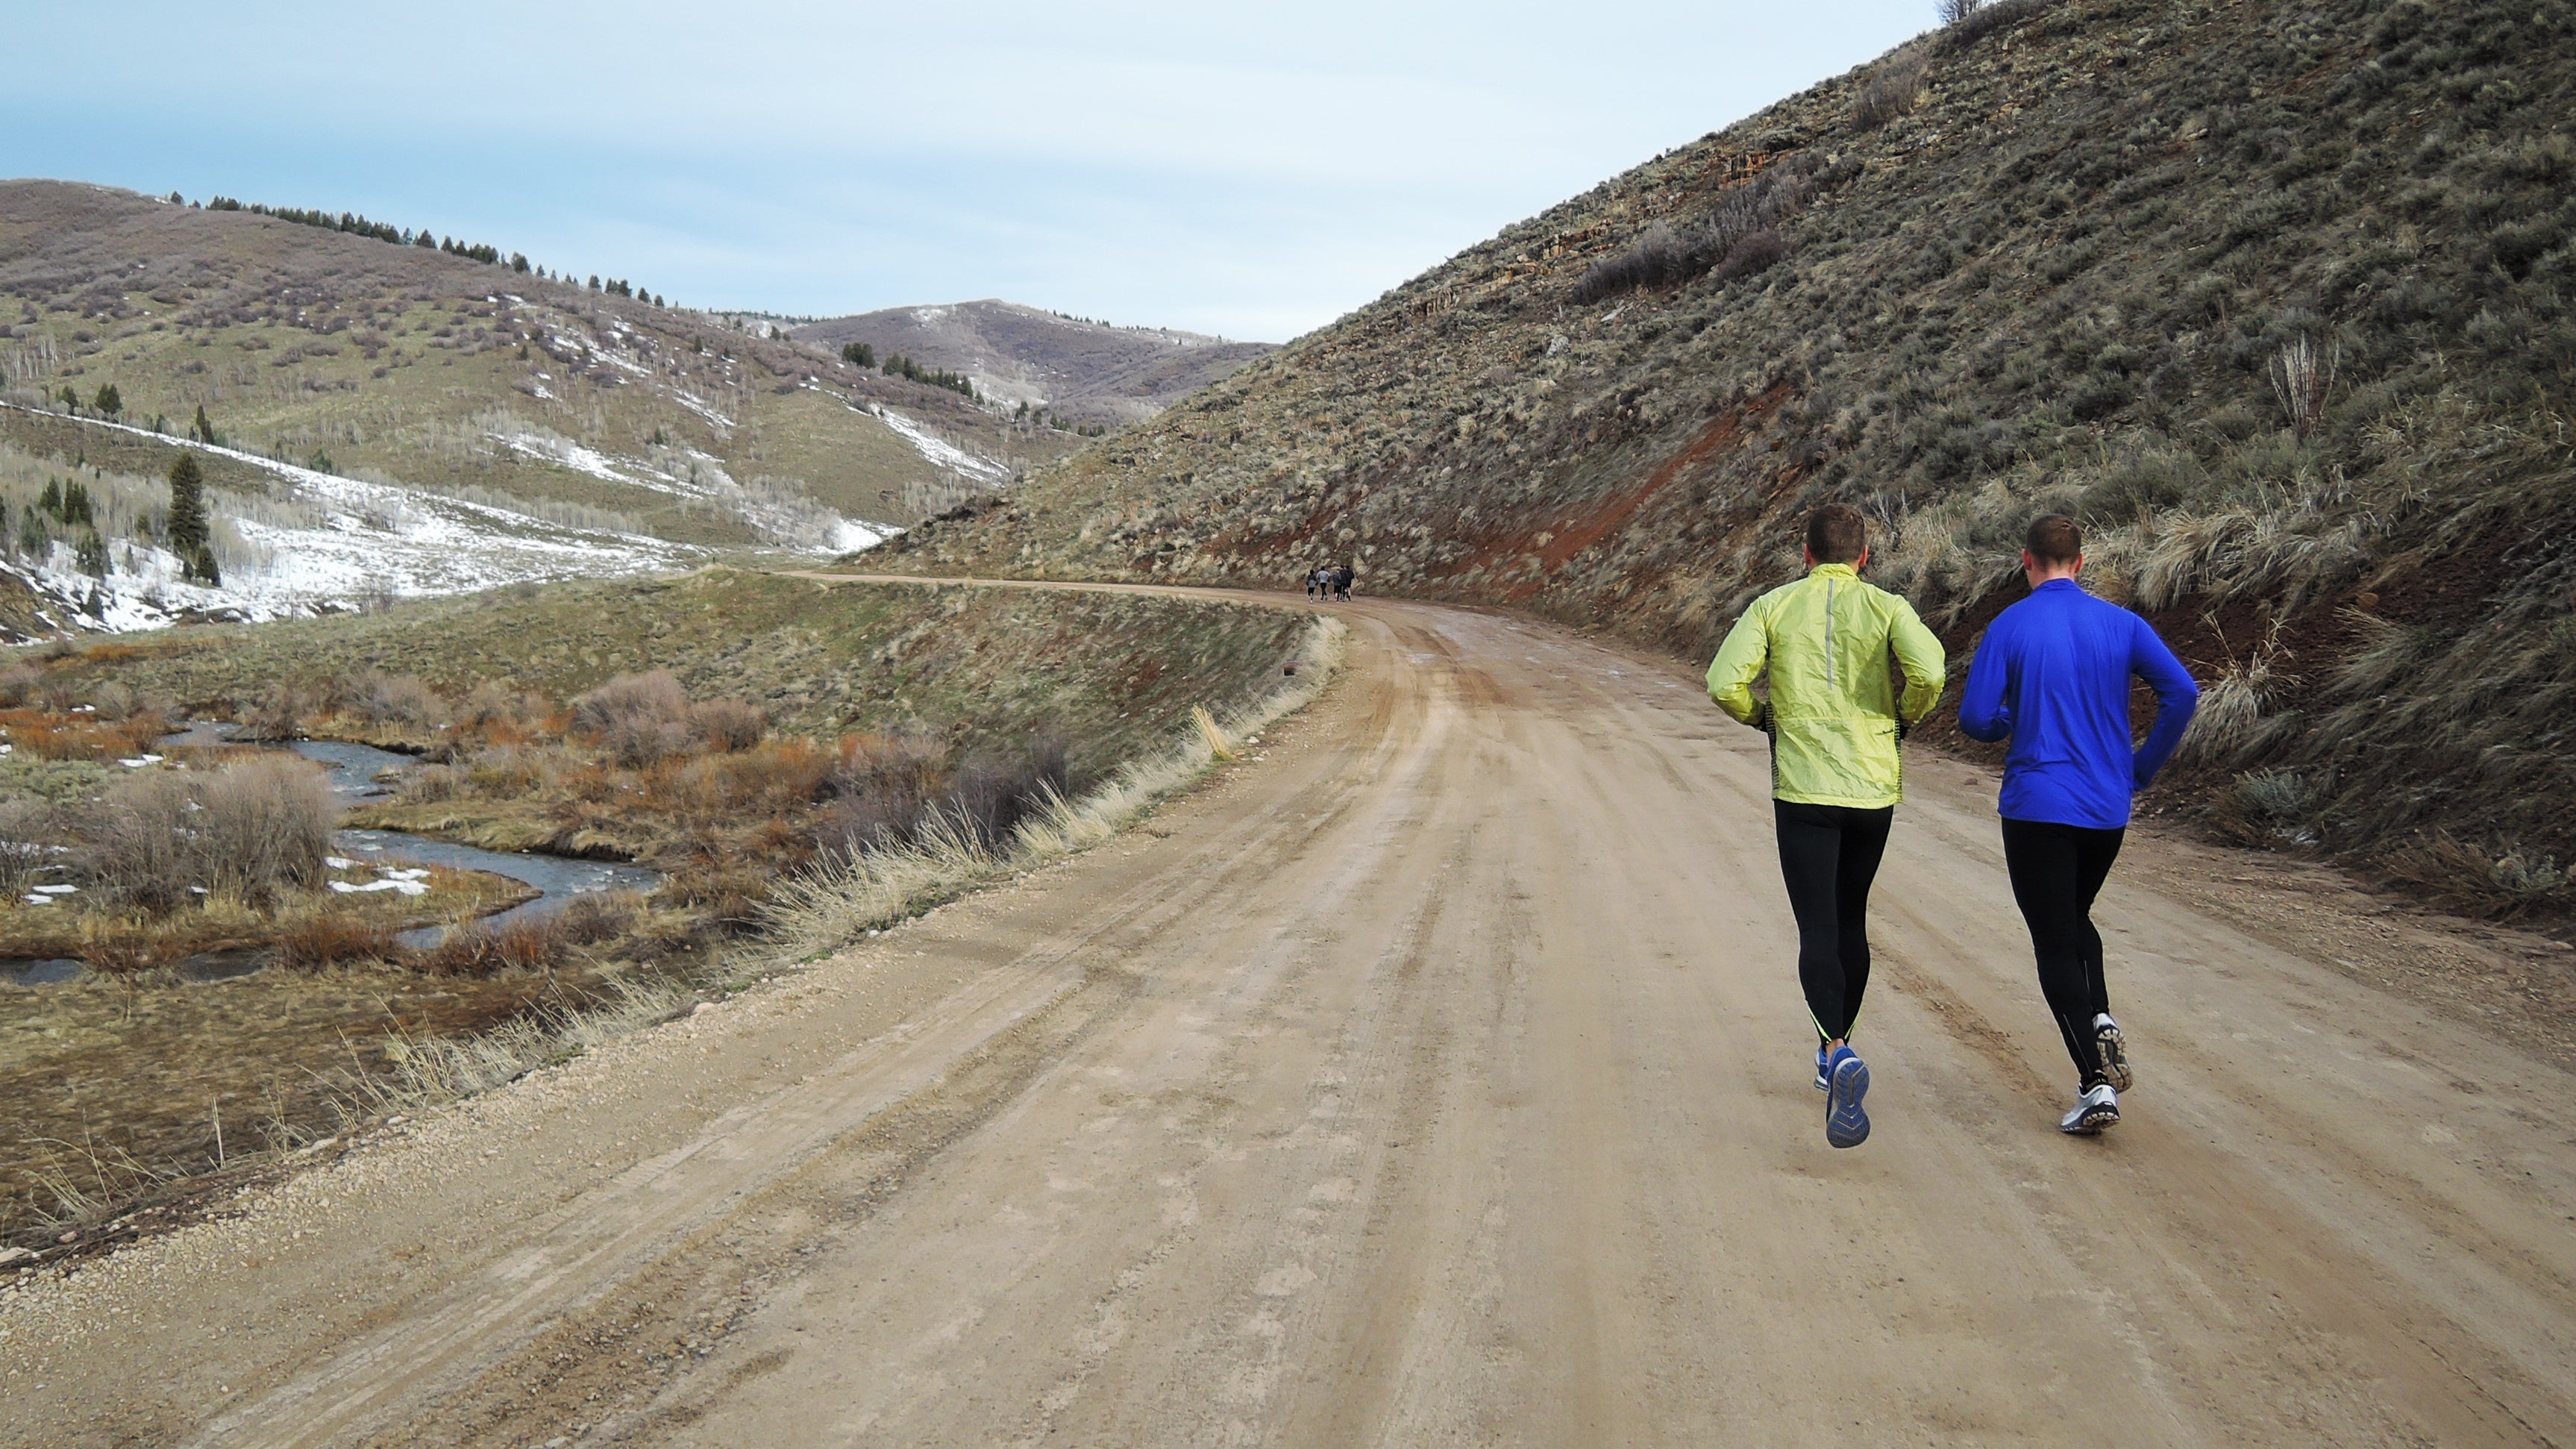 running on dirt road in mountains winter